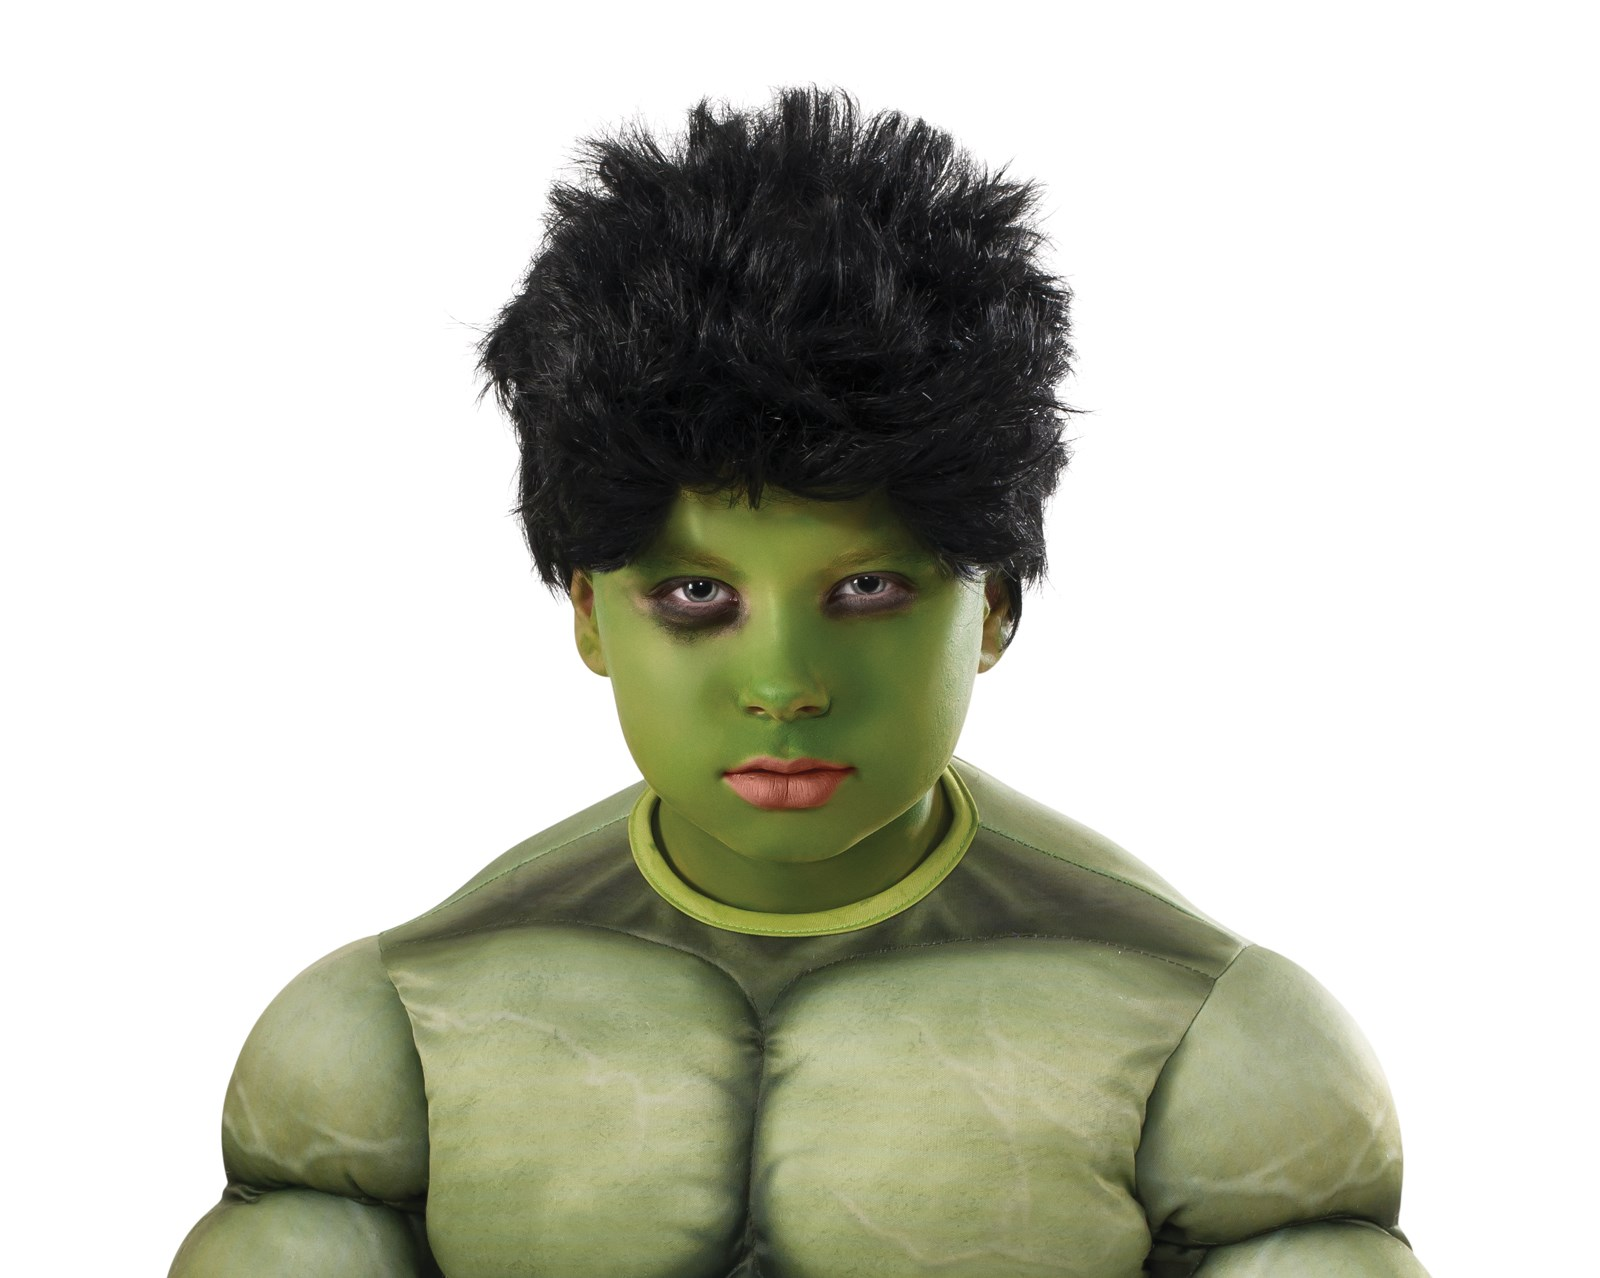 Avengers 2 - Age of Ultron: Hulk Wig For Kids One-Size